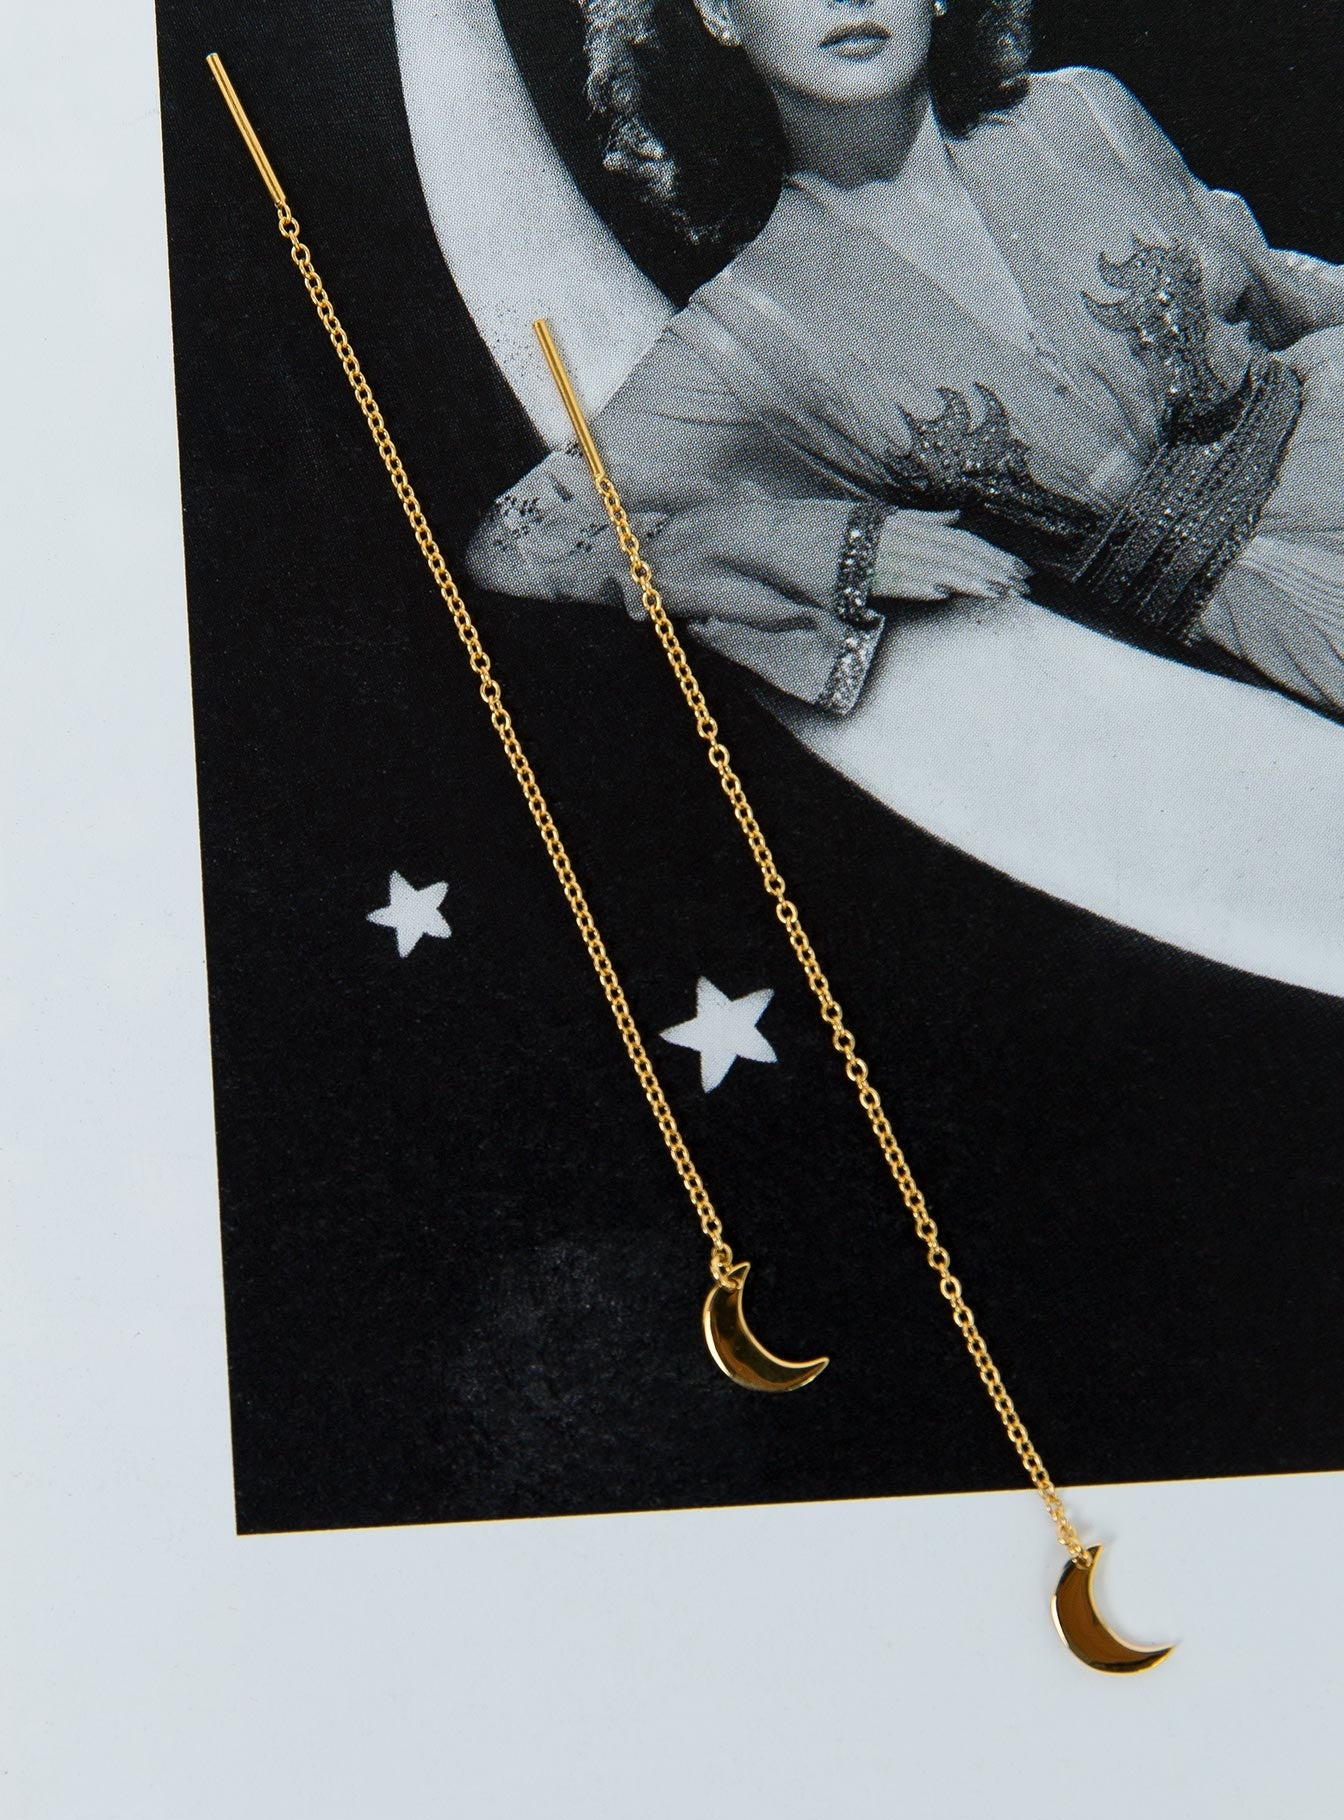 Midsummer Star Gold Moon Threaders 18K Gold Vermeil